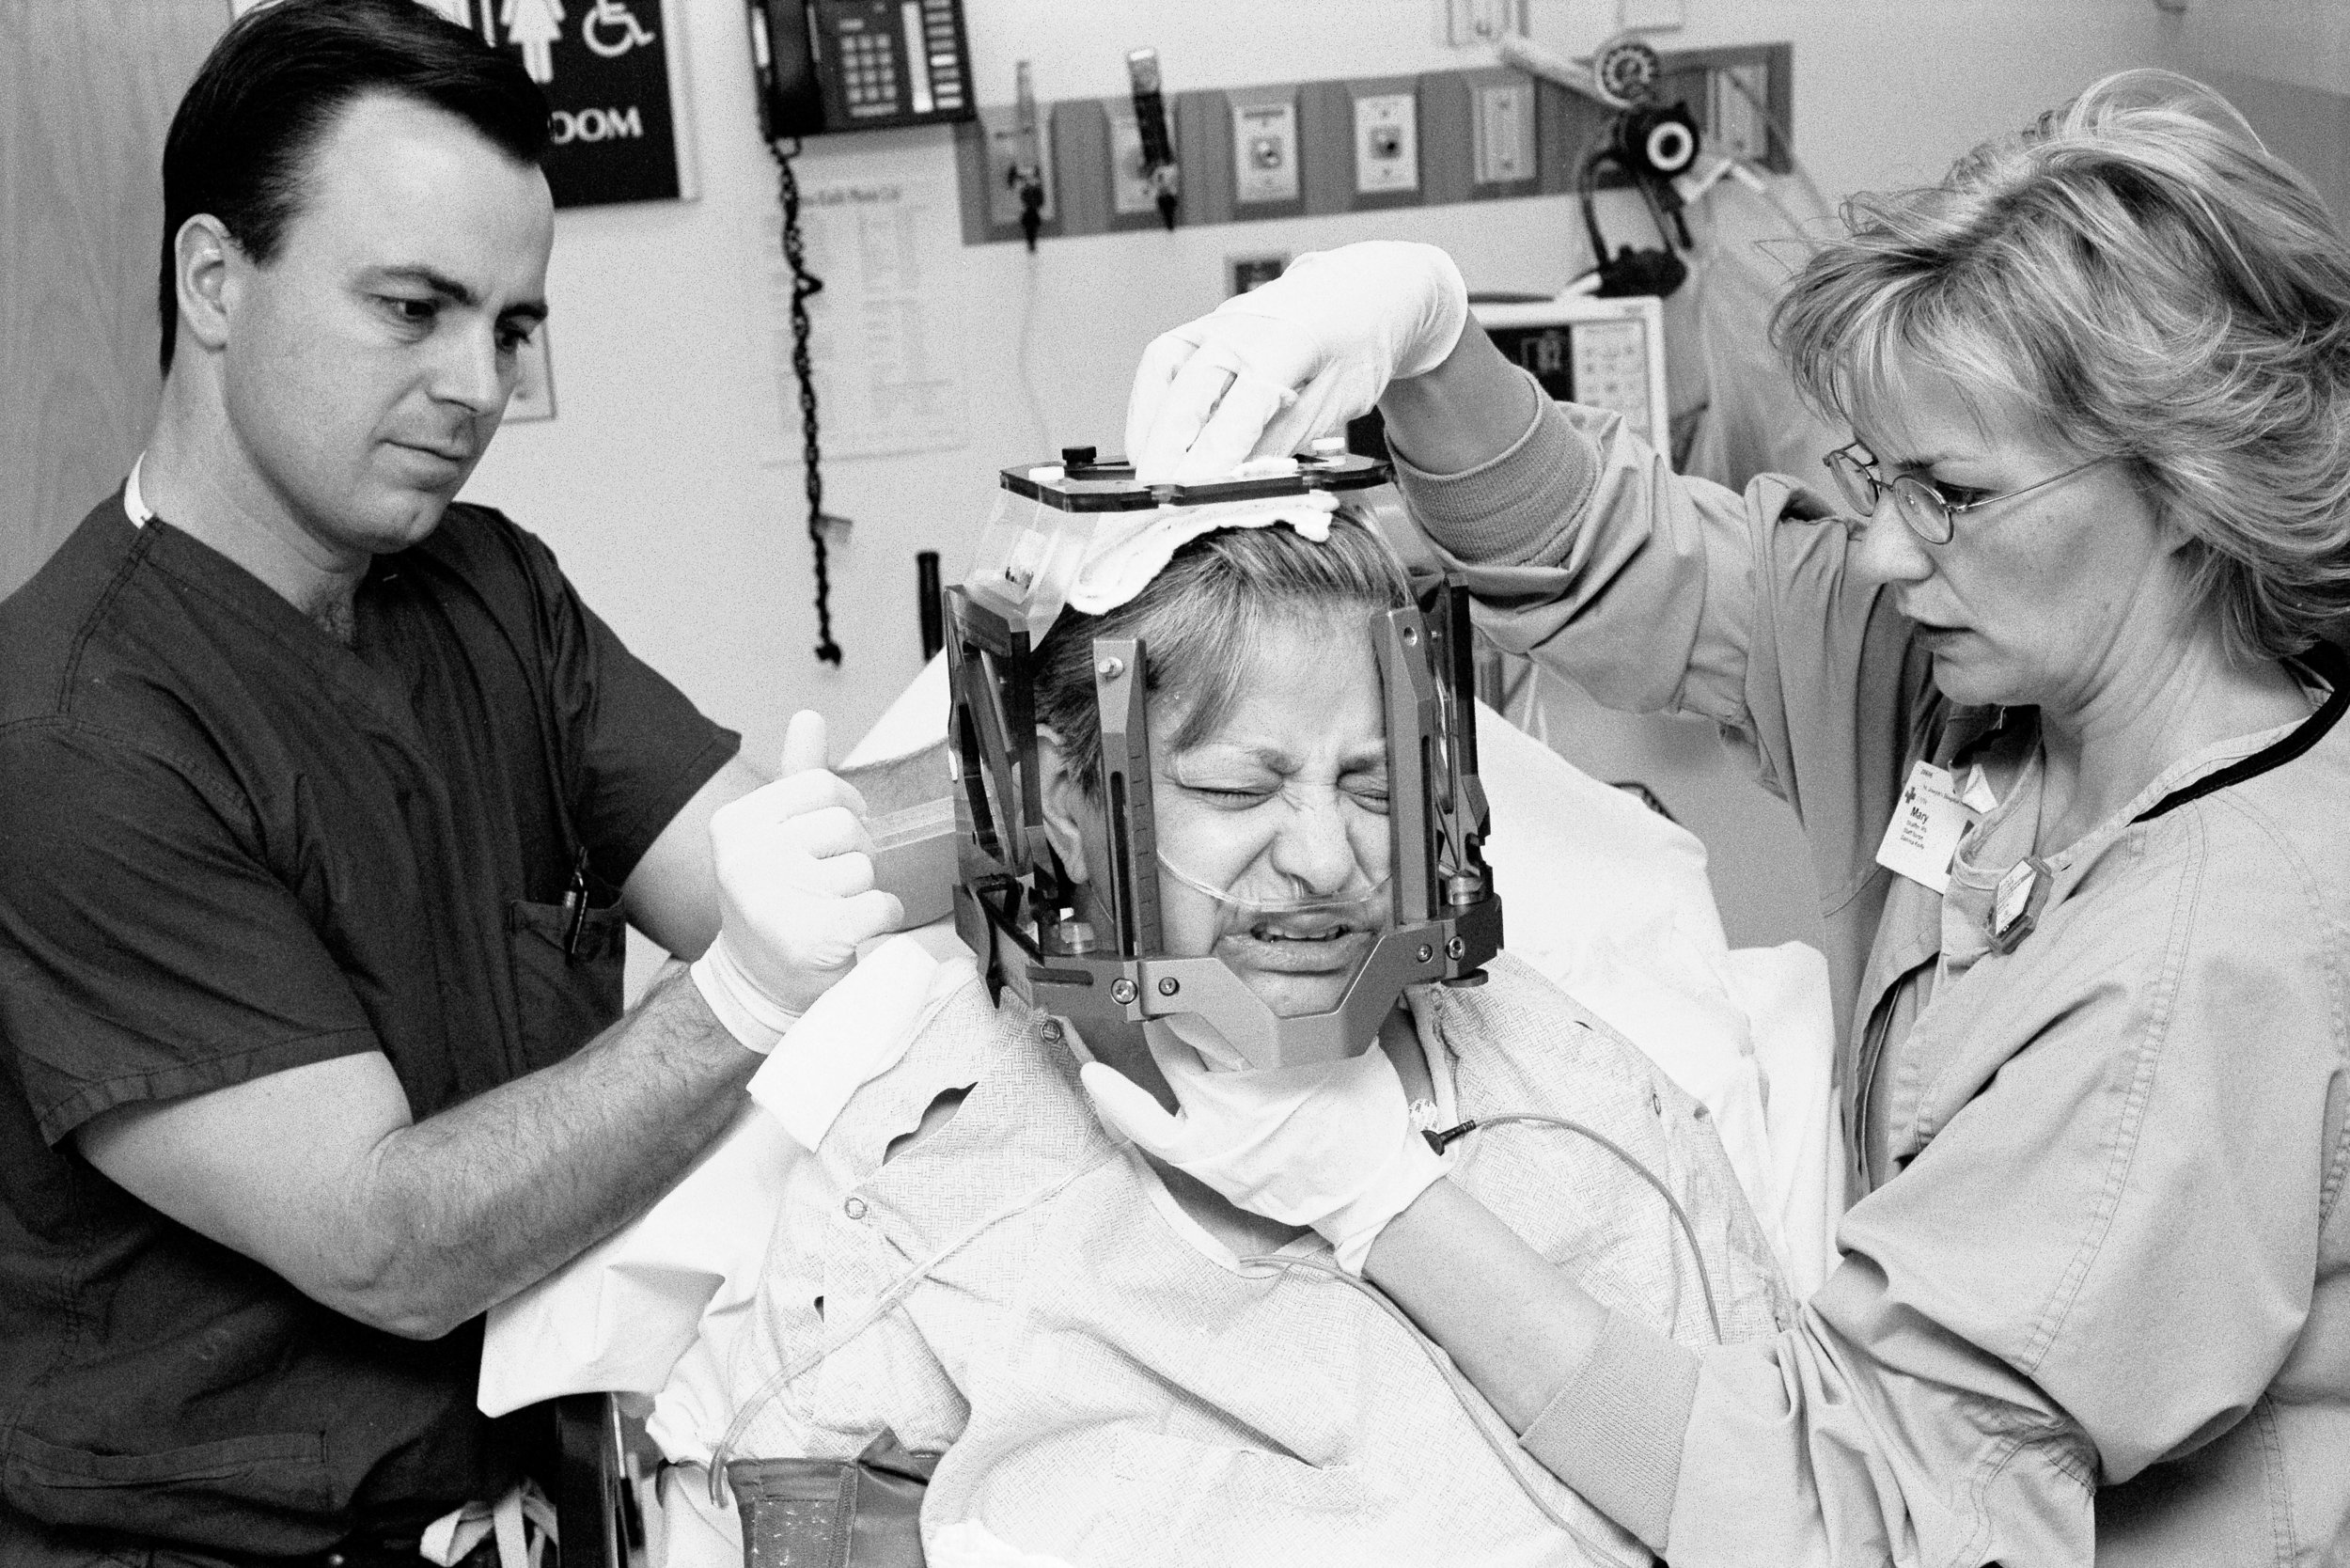 Dr. Randall Porter fixing the frame used for Gamma Knife radiation. Dr. Kris Smith, considered to have been one of Spetzler's star trainees and now a full time Physician at the BNI, performed my Gamma Knife surgery. Gamma Knife Radiation shrunk the remainder of my tumour by focusing a mass of gamma radiation onto a single spot inside the brain.